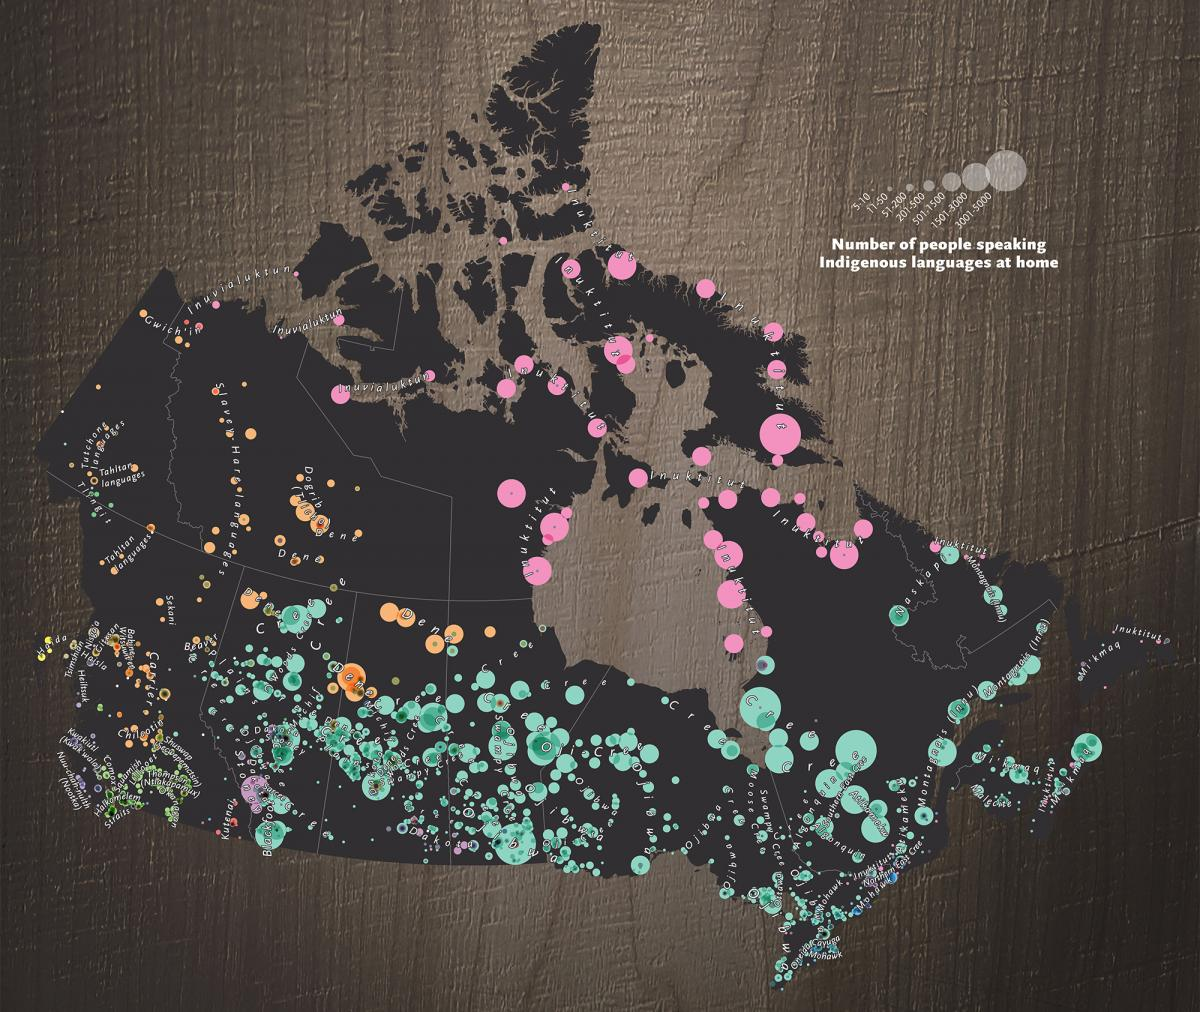 Where Indigenous languages are being spoken now in Canada. Scroll down for a closer look at this map and the country's 12 Indigenous language families. (Map: Chris Brackley/Can Geo)